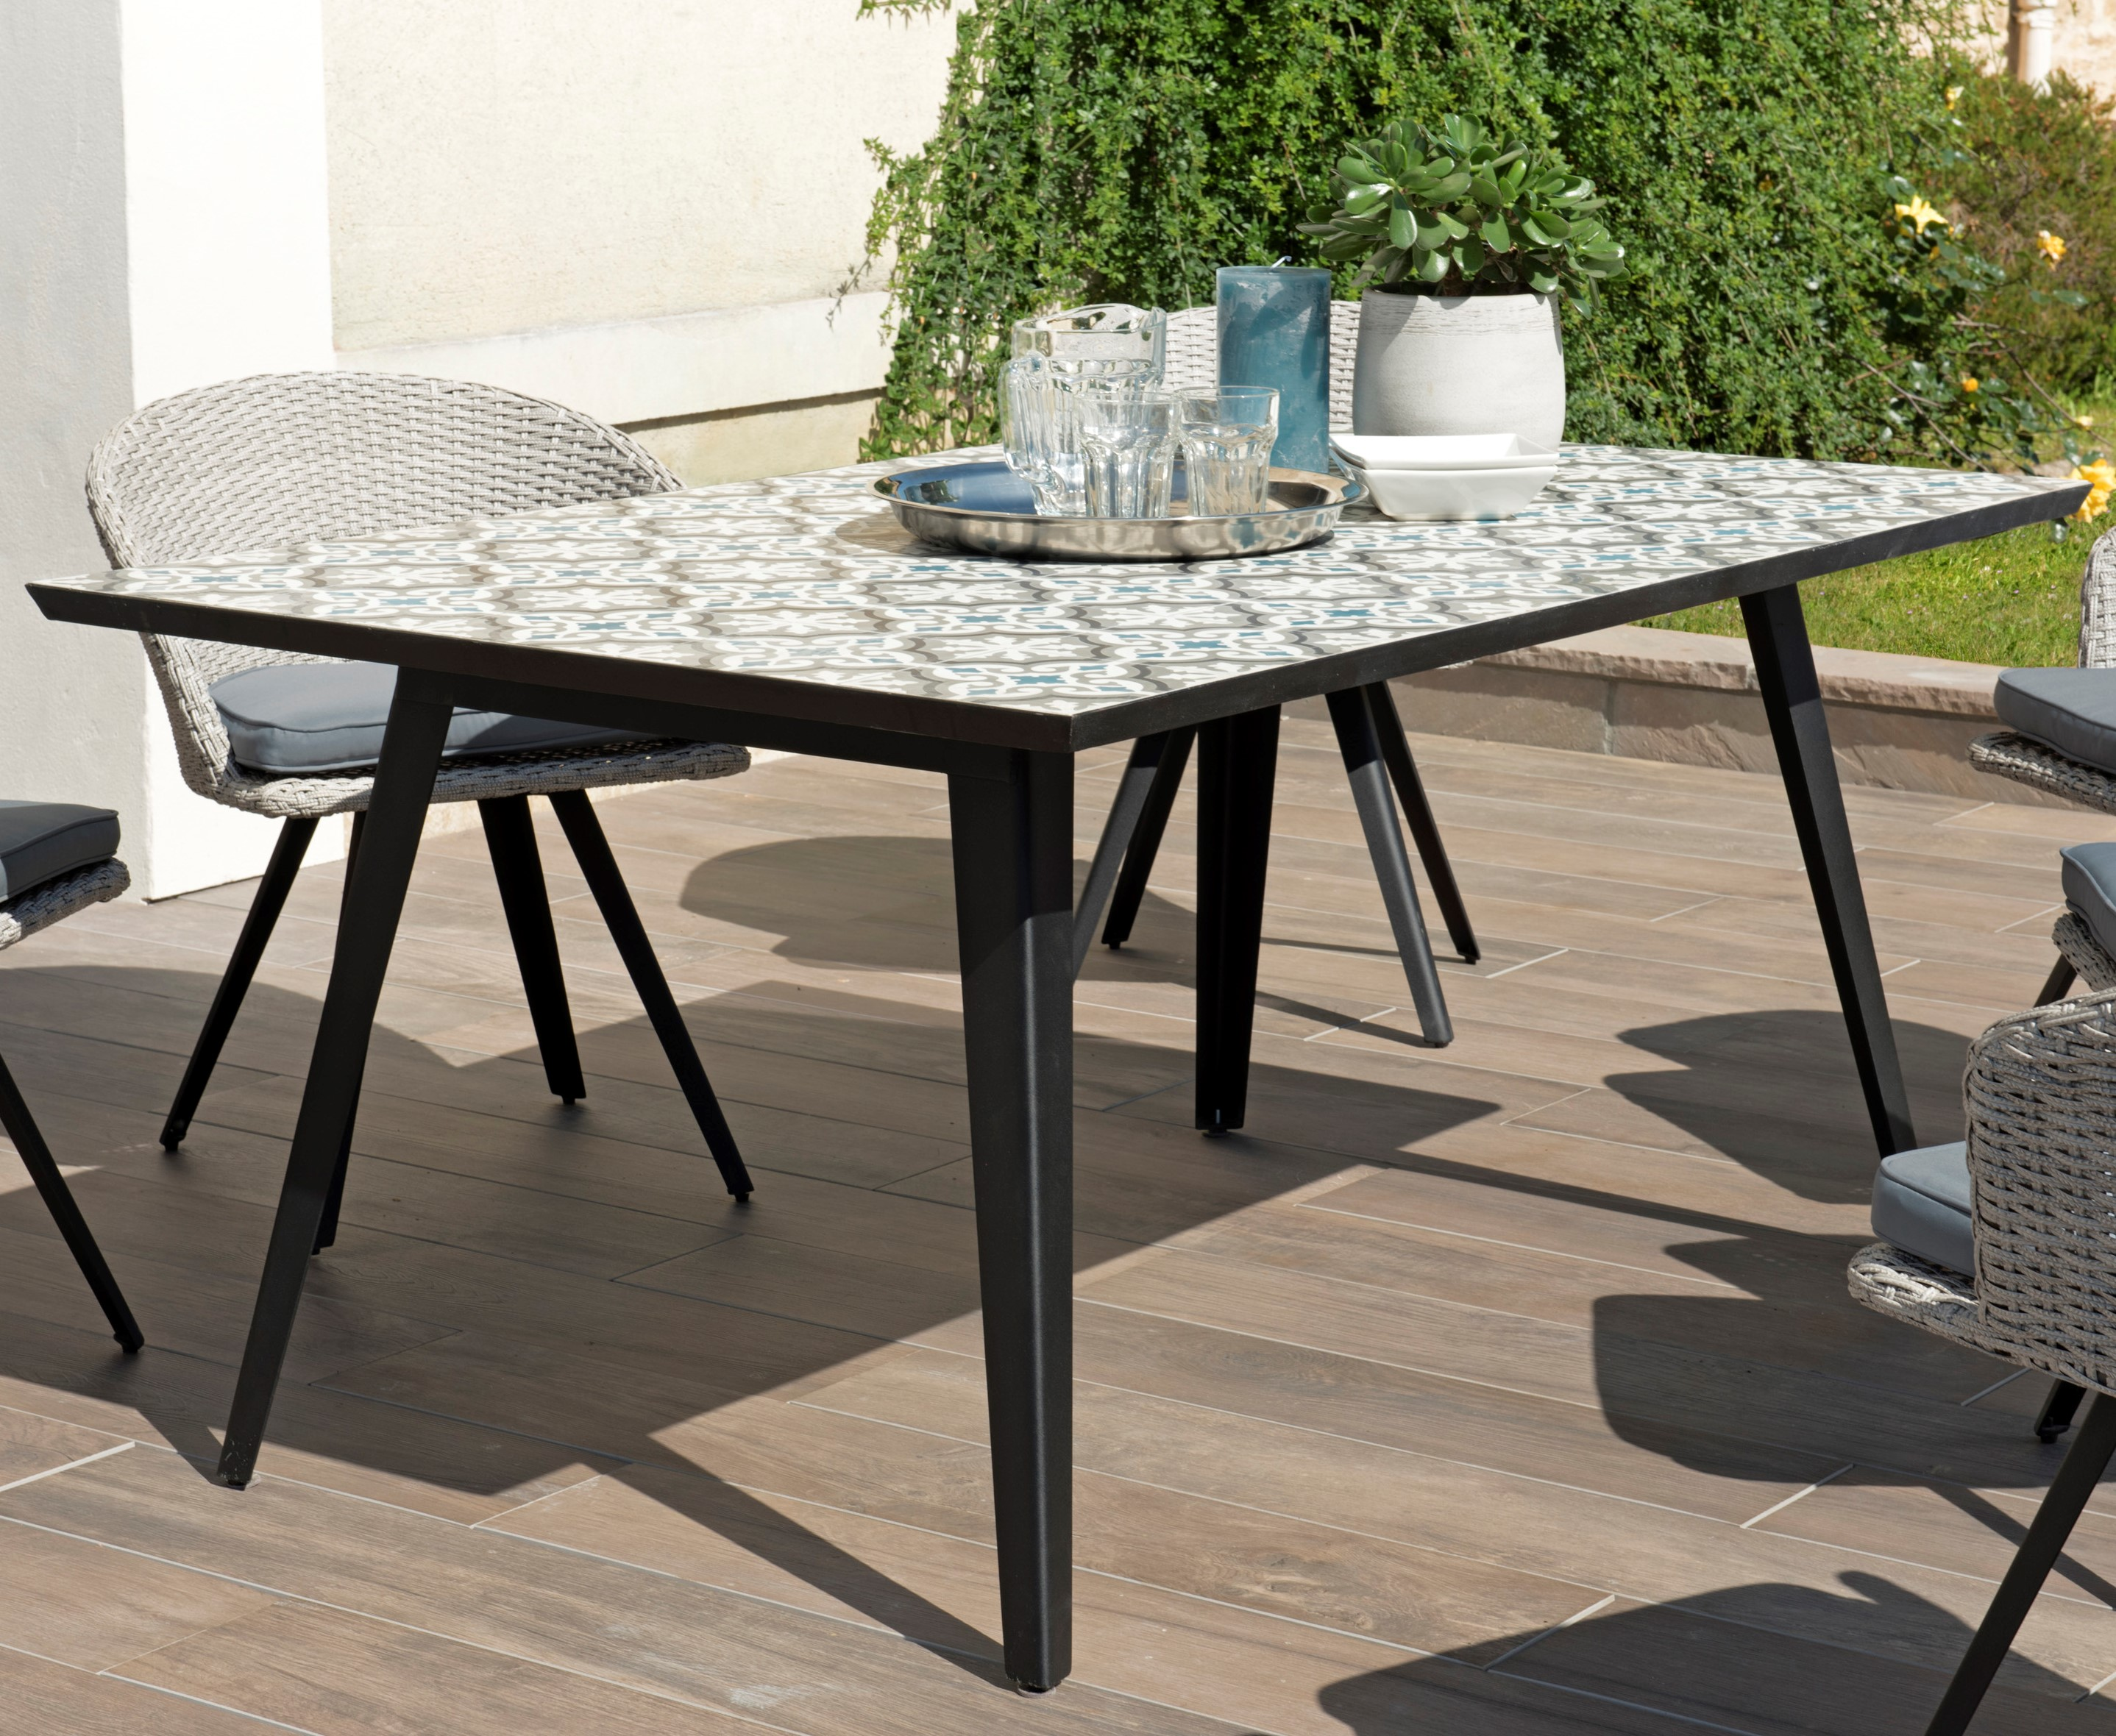 Table de jardin 6 personnes carreaux de ciment 162x102 SUMMER